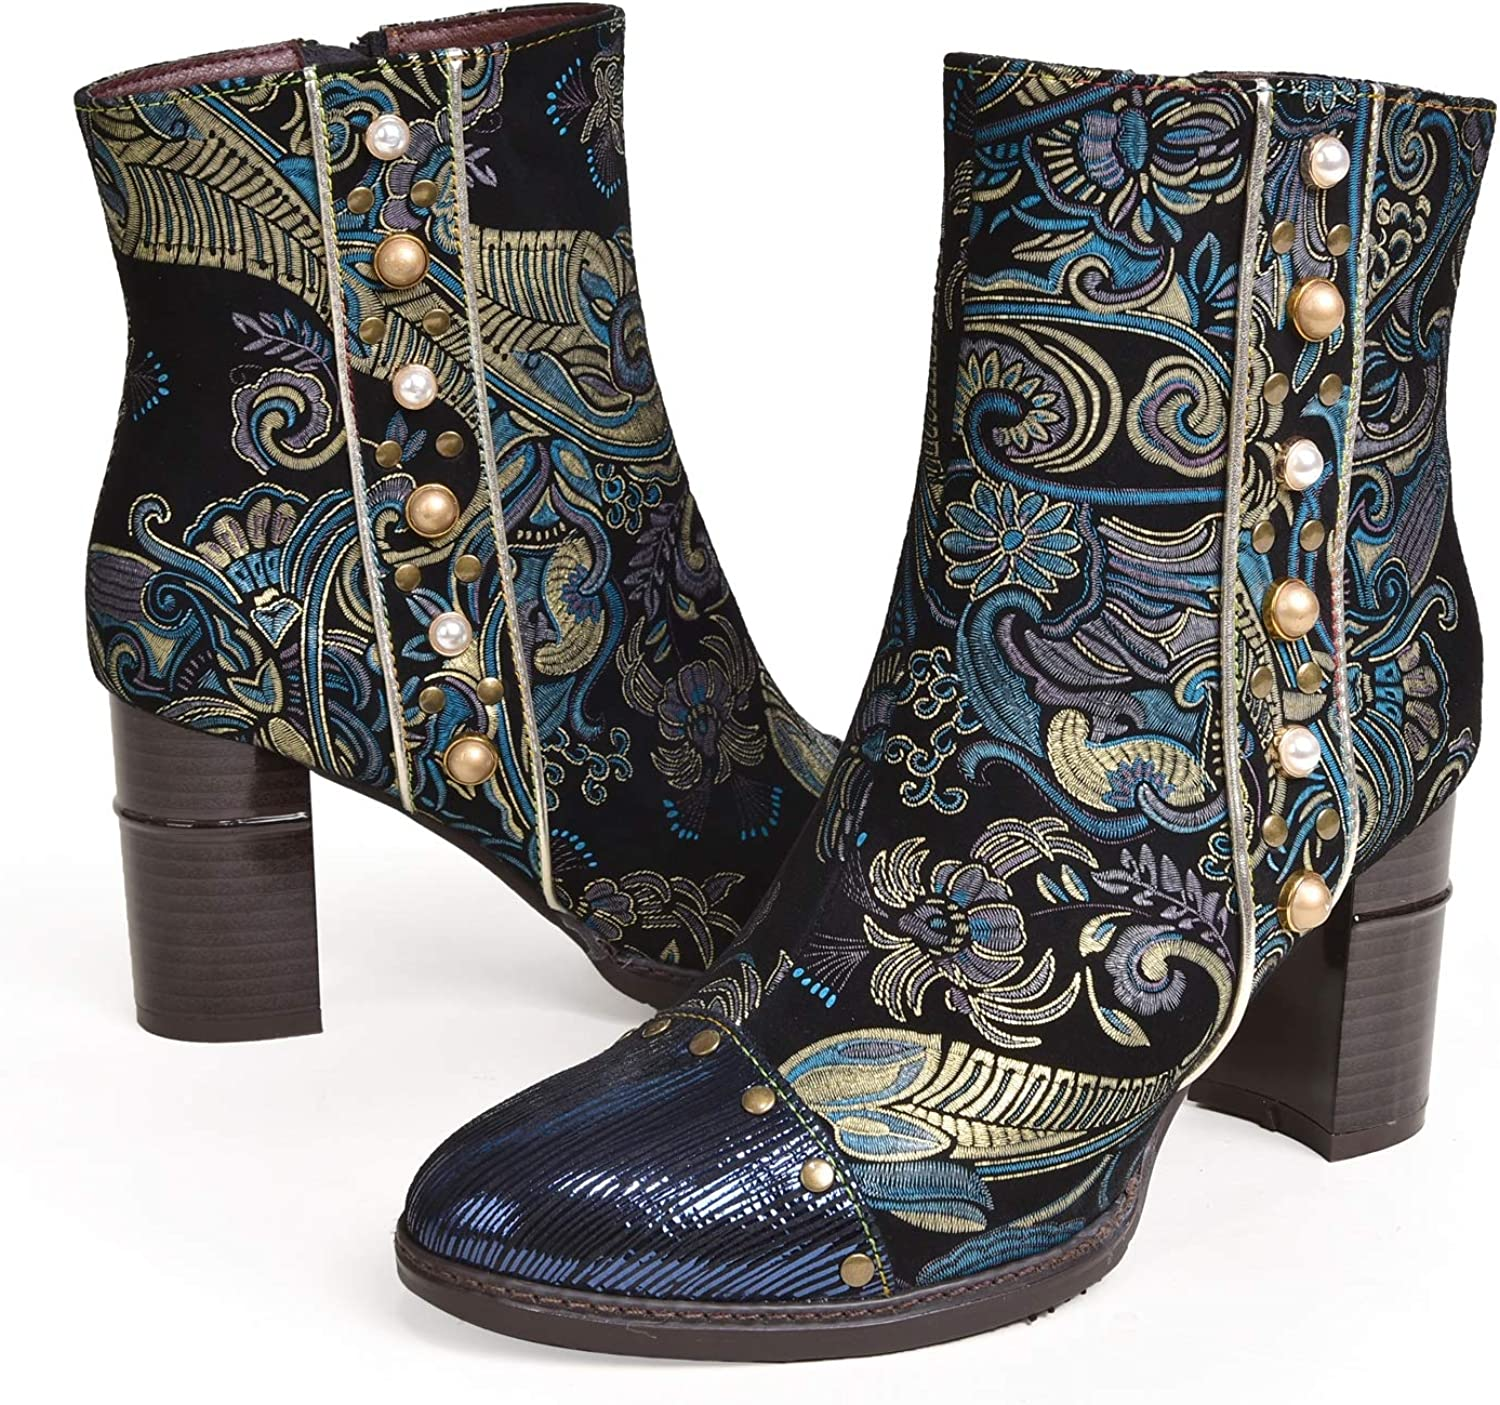 Charmstep Women's Leather Ankle Bootie Retro Handmade Bohemian Splicing Pattern High Block Heel Cowgirl Booties Zipper Snow Boots Blue